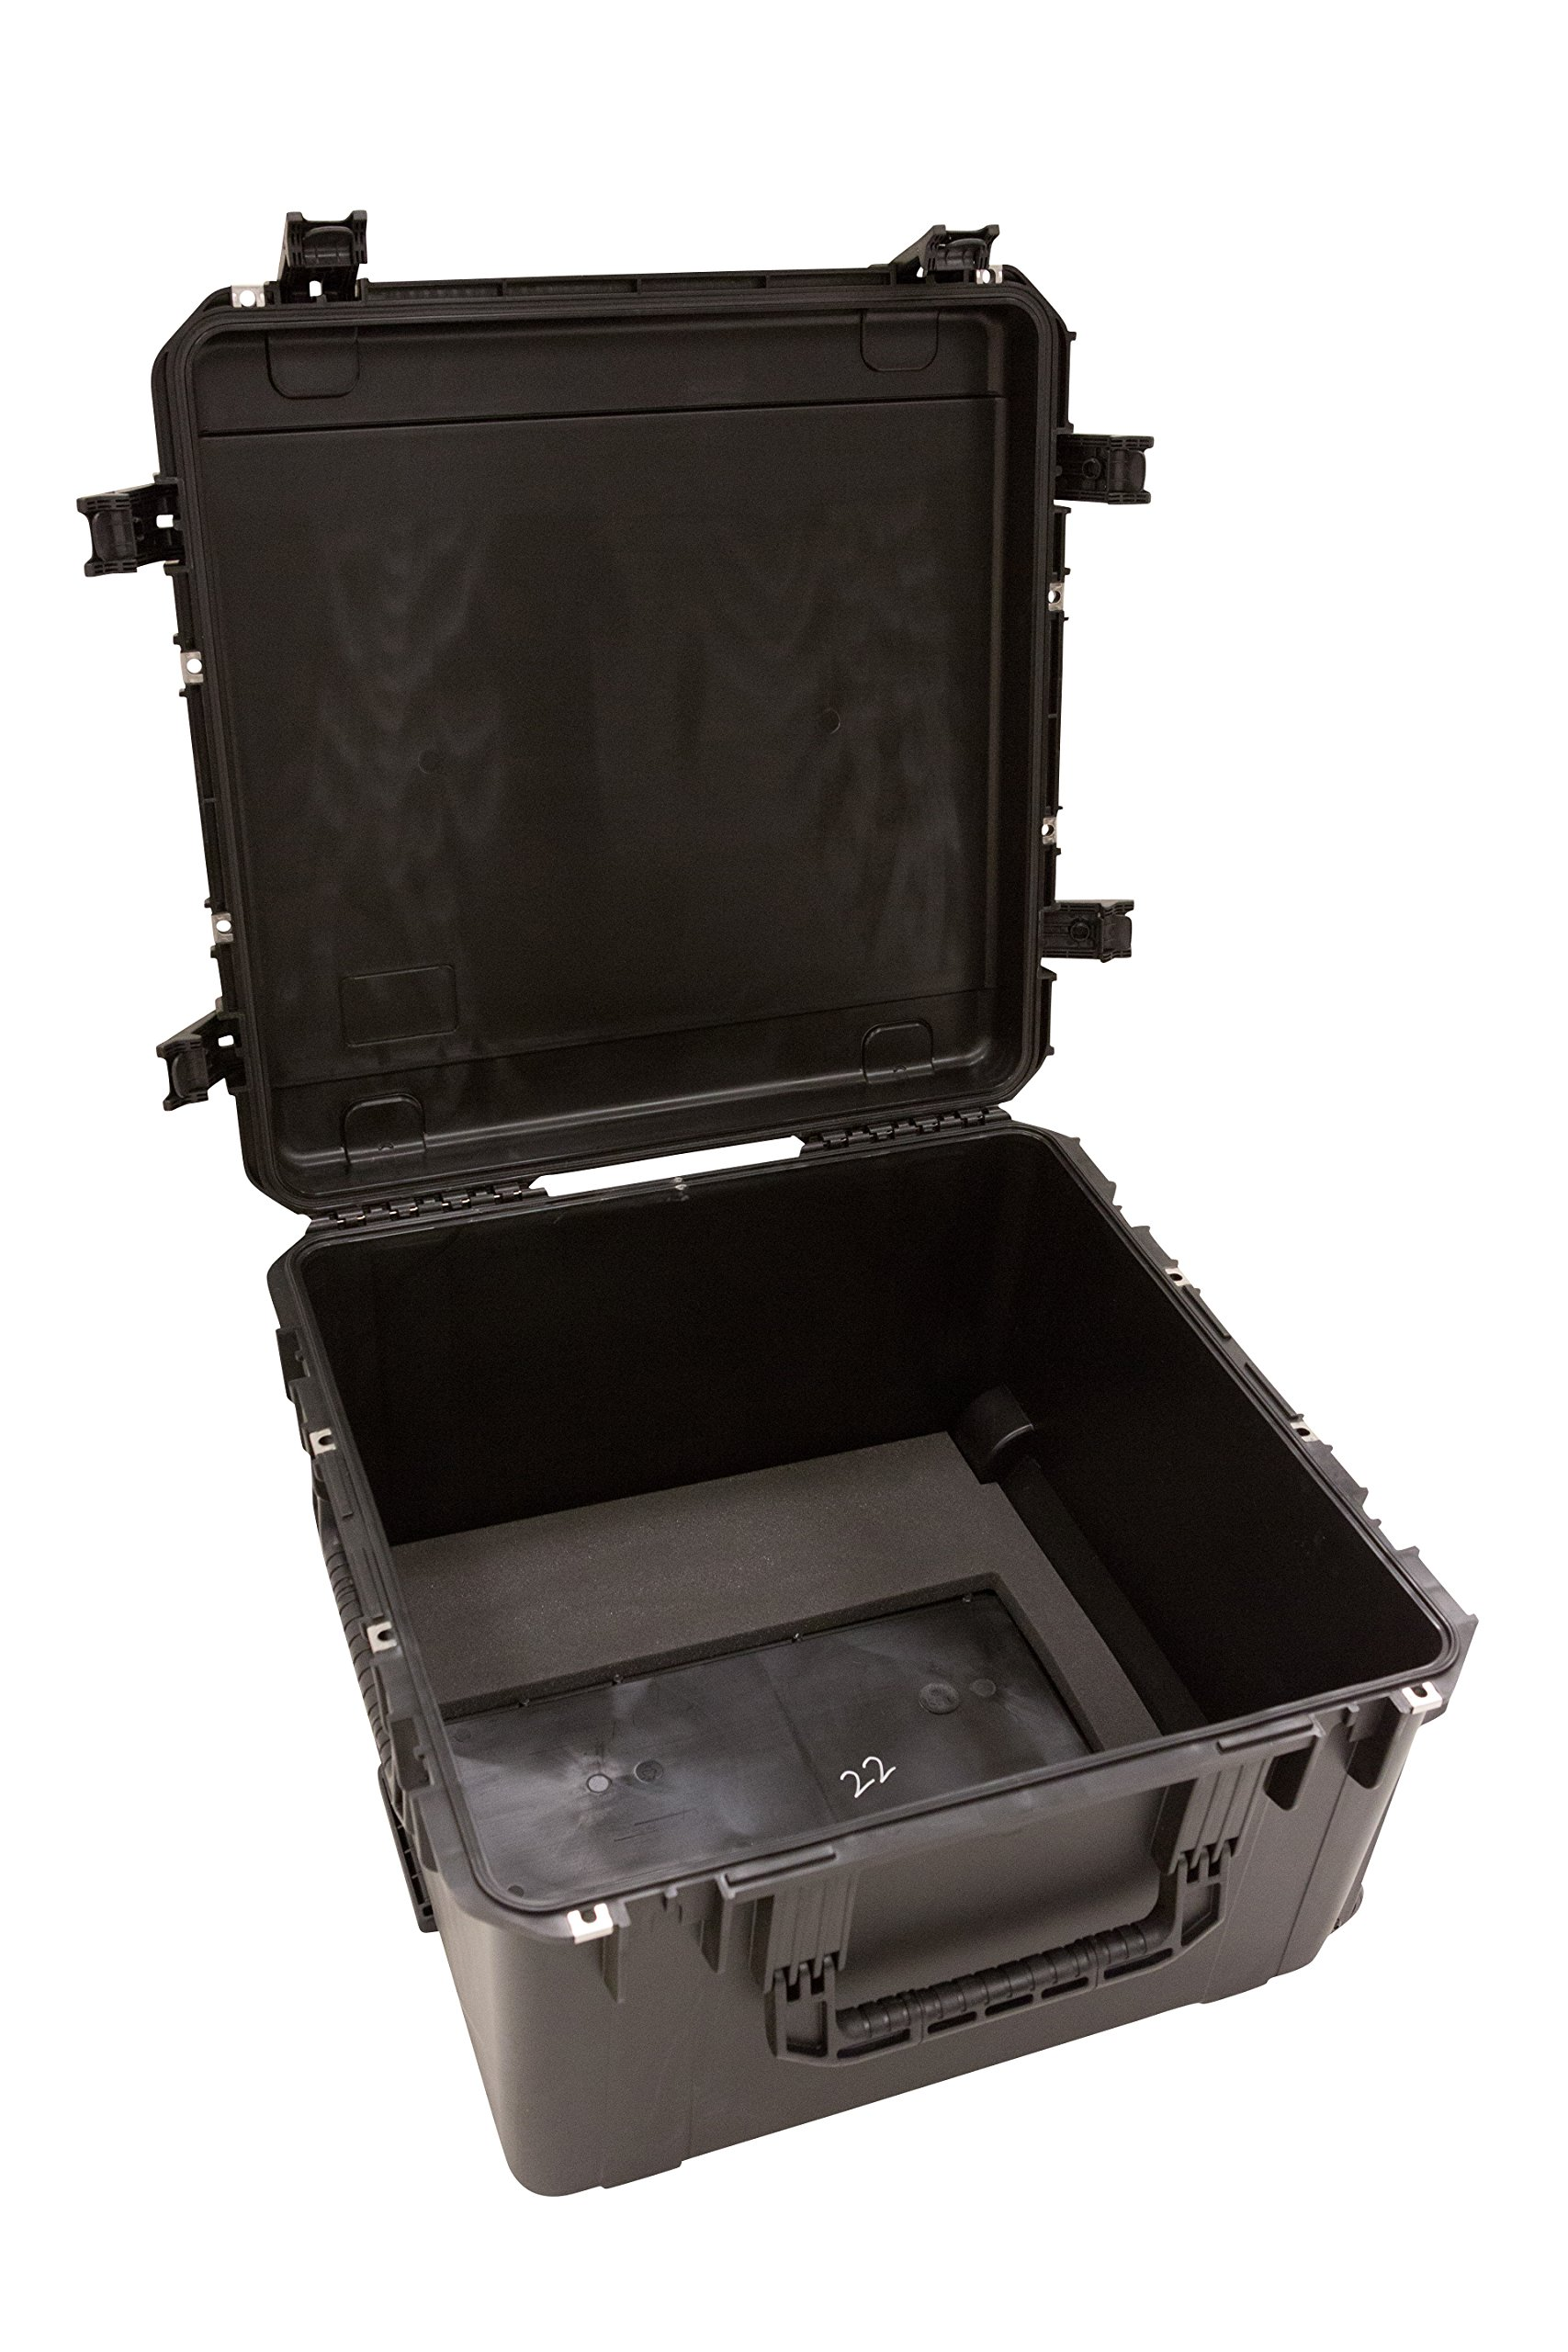 SKB 3i-2424-14BE iSeries Waterproof Case - 24'' x 24'' x 14'' with wheels empty